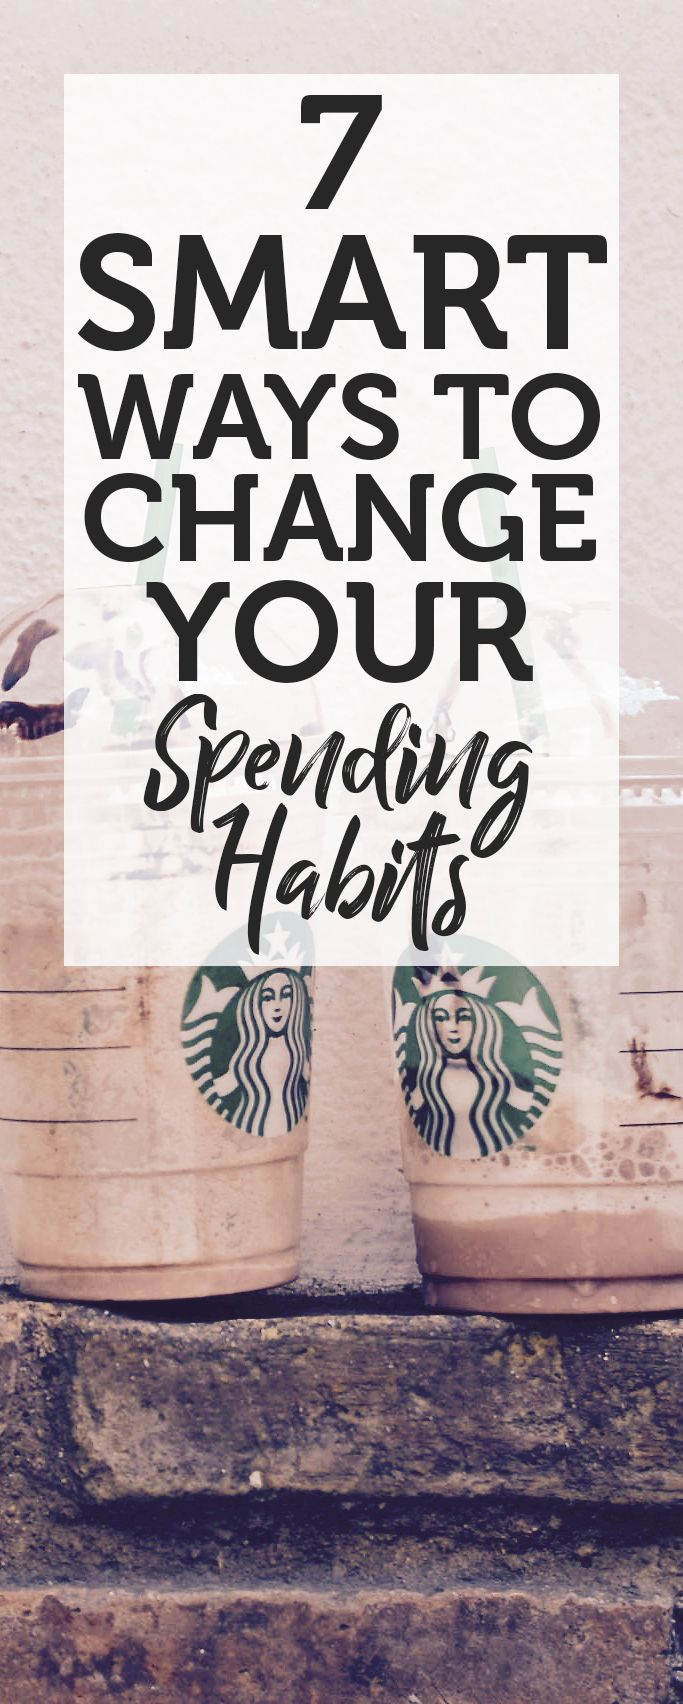 7 Smart Ways To Change Your Spending Habits - Trying to spend less money here and there? Don't know where to cut back without losing your current lifestyle? Then allow me to tell you about how I have changed how I spend my money. #spending #save #money #change